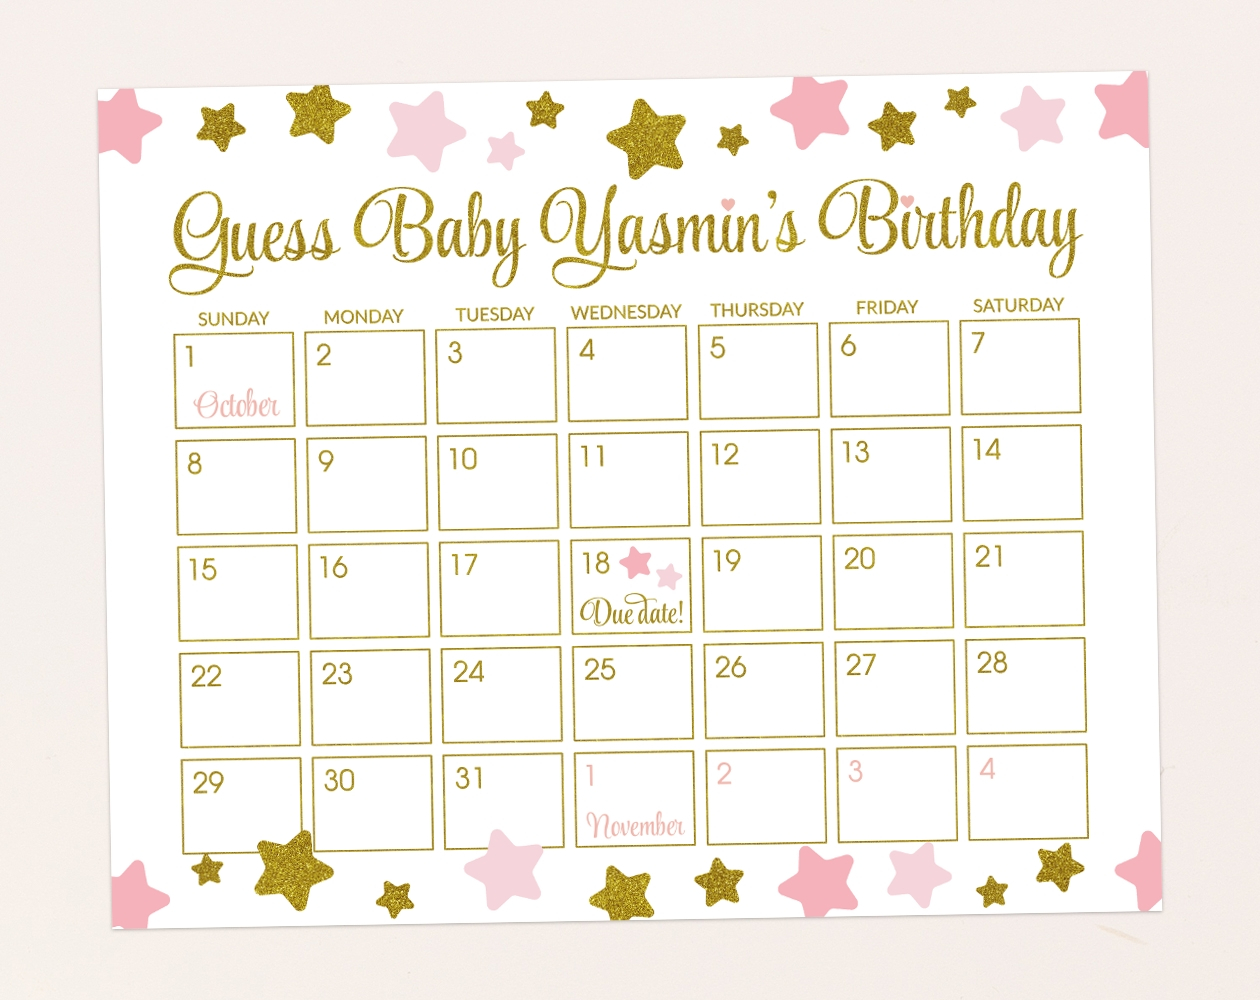 Guess The Date Babyparty | Calendar Template 2020